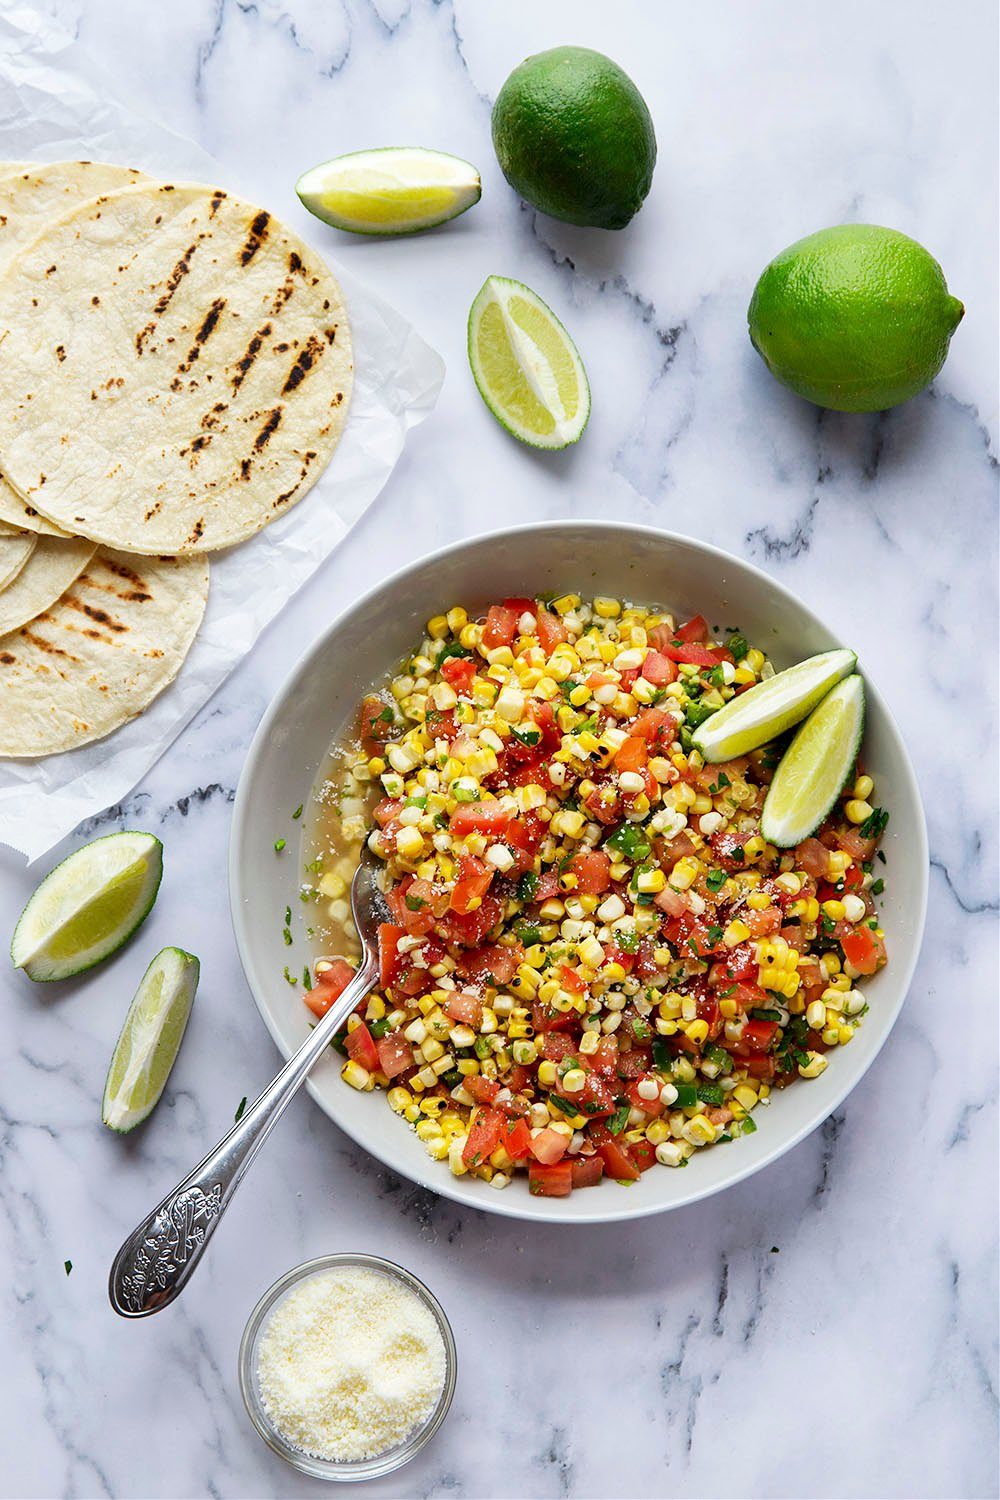 Grilled chipotle steak tacos feature juicy grilled steak with a punch of smoky heat and piled high with a flavorful charred sweet corn salsa!